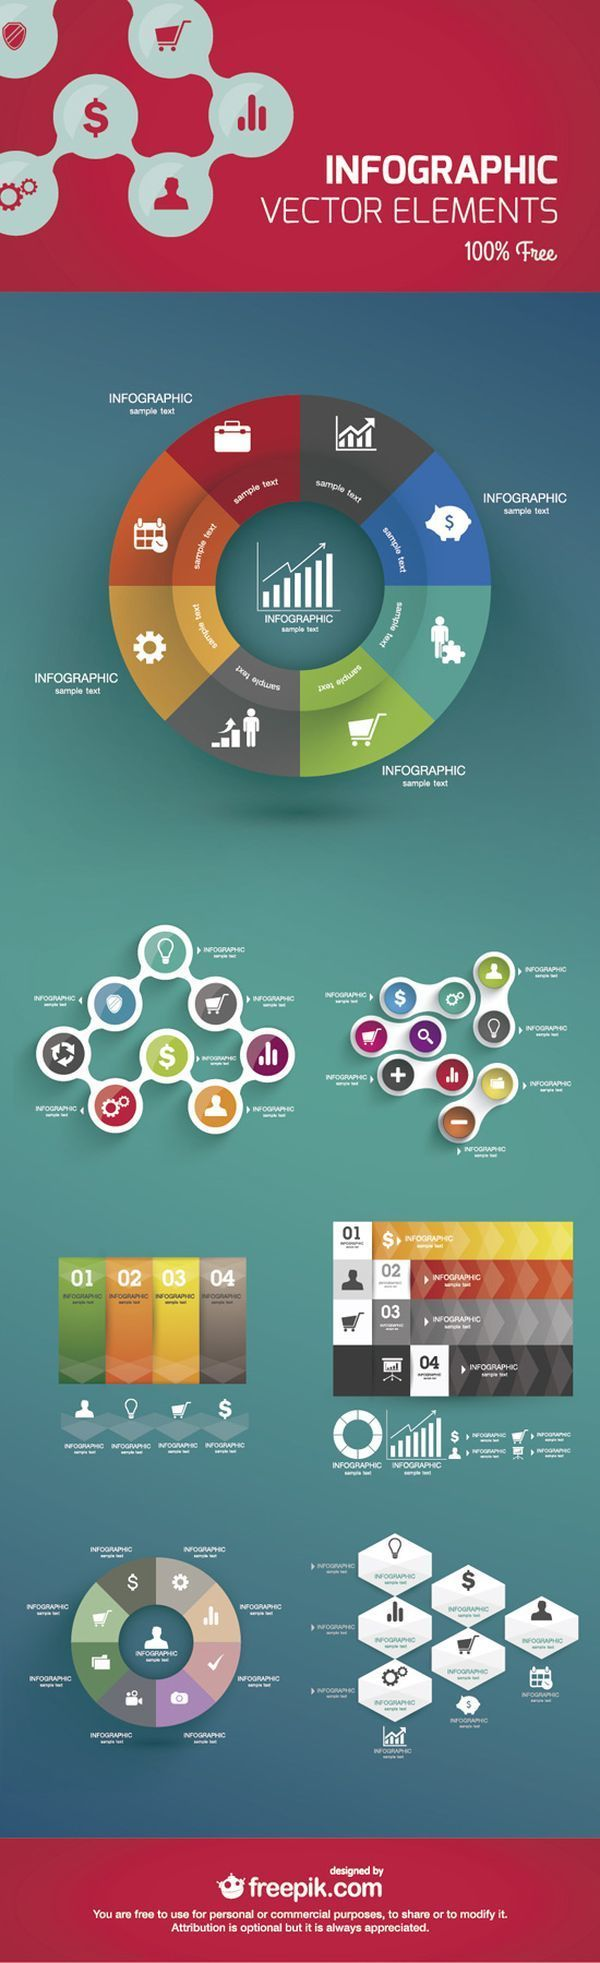 Infography free graphics design